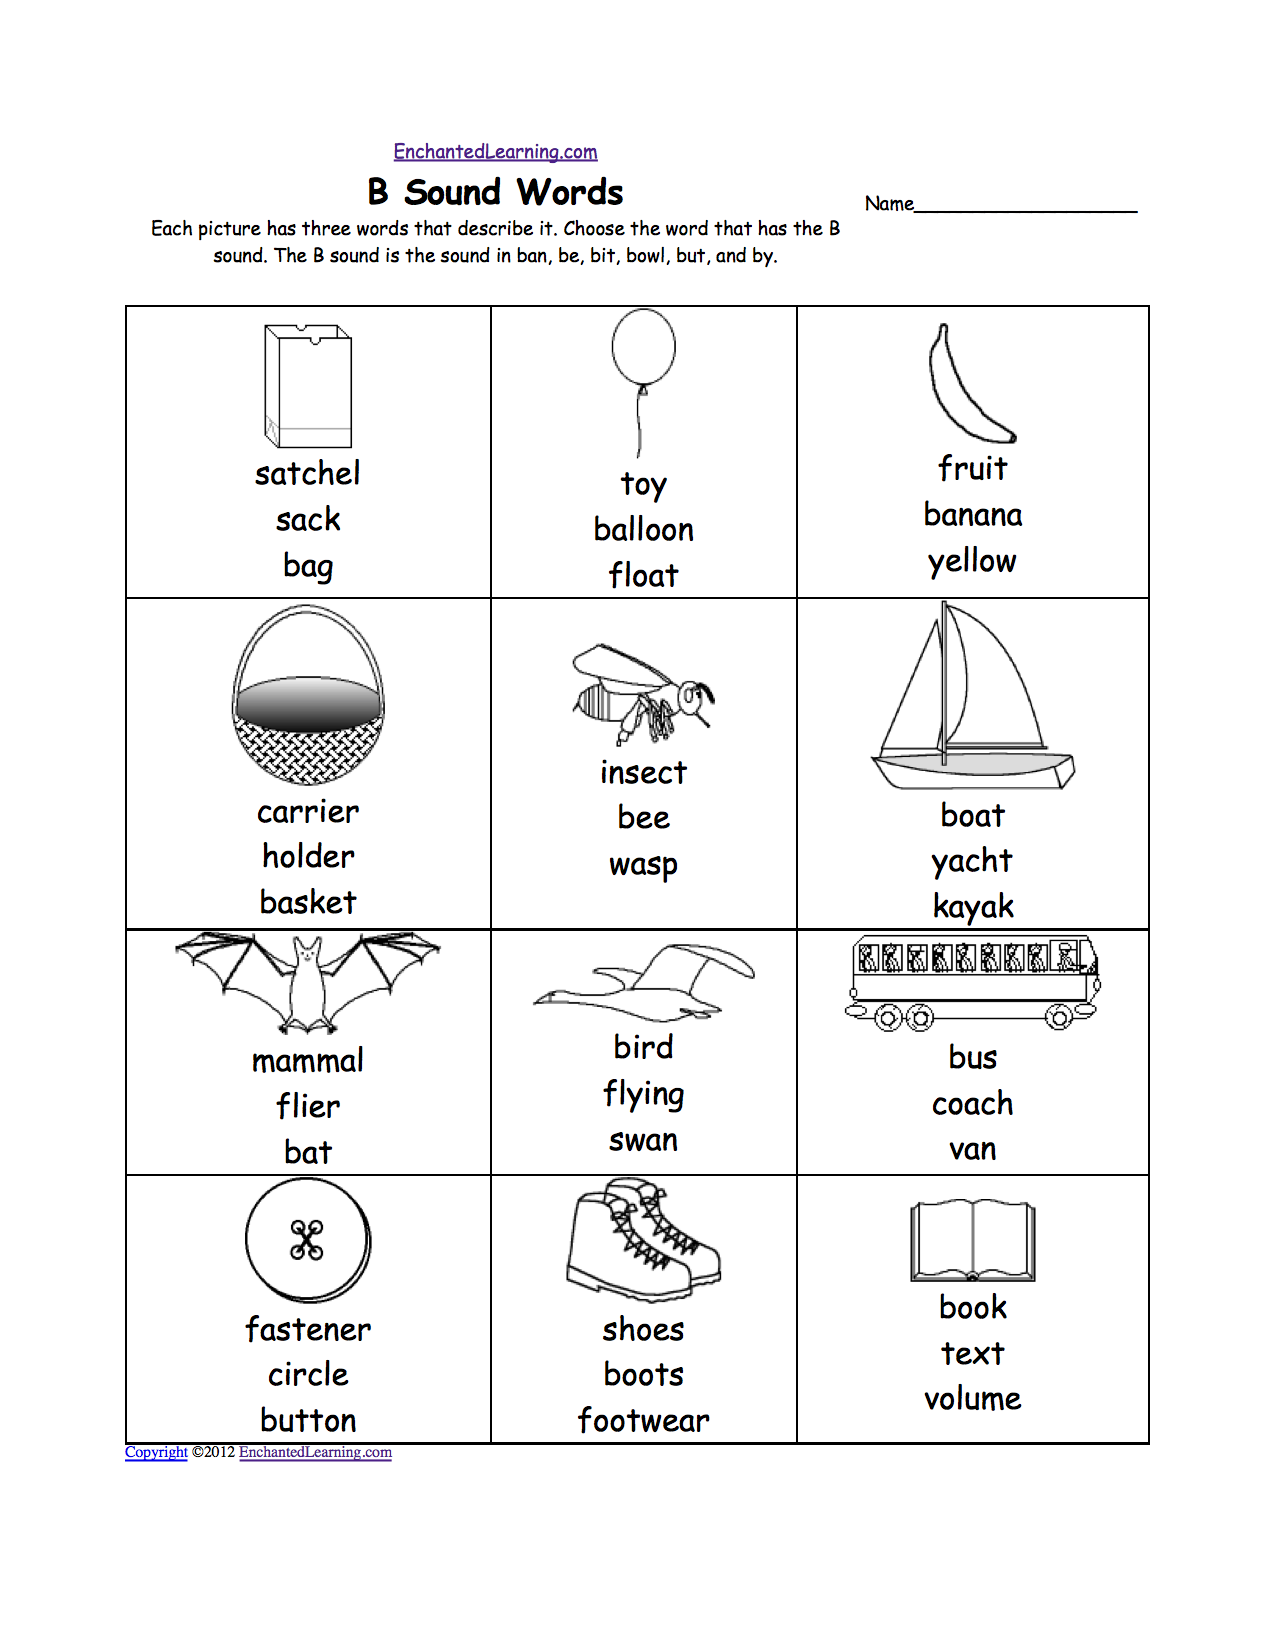 Aldiablosus  Prepossessing Phonics Worksheets Multiple Choice Worksheets To Print  With Marvelous Quotbquot Sound Phonics Worksheet Multiple Choice Each Picture Has Three Words That Describe It Choose The Word That Has A Quotbquot Sound The Quotbquot Sound Is The Sound  With Agreeable Sight Word Look Worksheet Also Shape Worksheet For Preschool In Addition Printable Letter B Worksheets And Free Printable Alphabet Worksheets For Kindergarten As Well As Fifth Grade Multiplication Worksheets Additionally Compare Contrast Worksheets Rd Grade From Enchantedlearningcom With Aldiablosus  Marvelous Phonics Worksheets Multiple Choice Worksheets To Print  With Agreeable Quotbquot Sound Phonics Worksheet Multiple Choice Each Picture Has Three Words That Describe It Choose The Word That Has A Quotbquot Sound The Quotbquot Sound Is The Sound  And Prepossessing Sight Word Look Worksheet Also Shape Worksheet For Preschool In Addition Printable Letter B Worksheets From Enchantedlearningcom